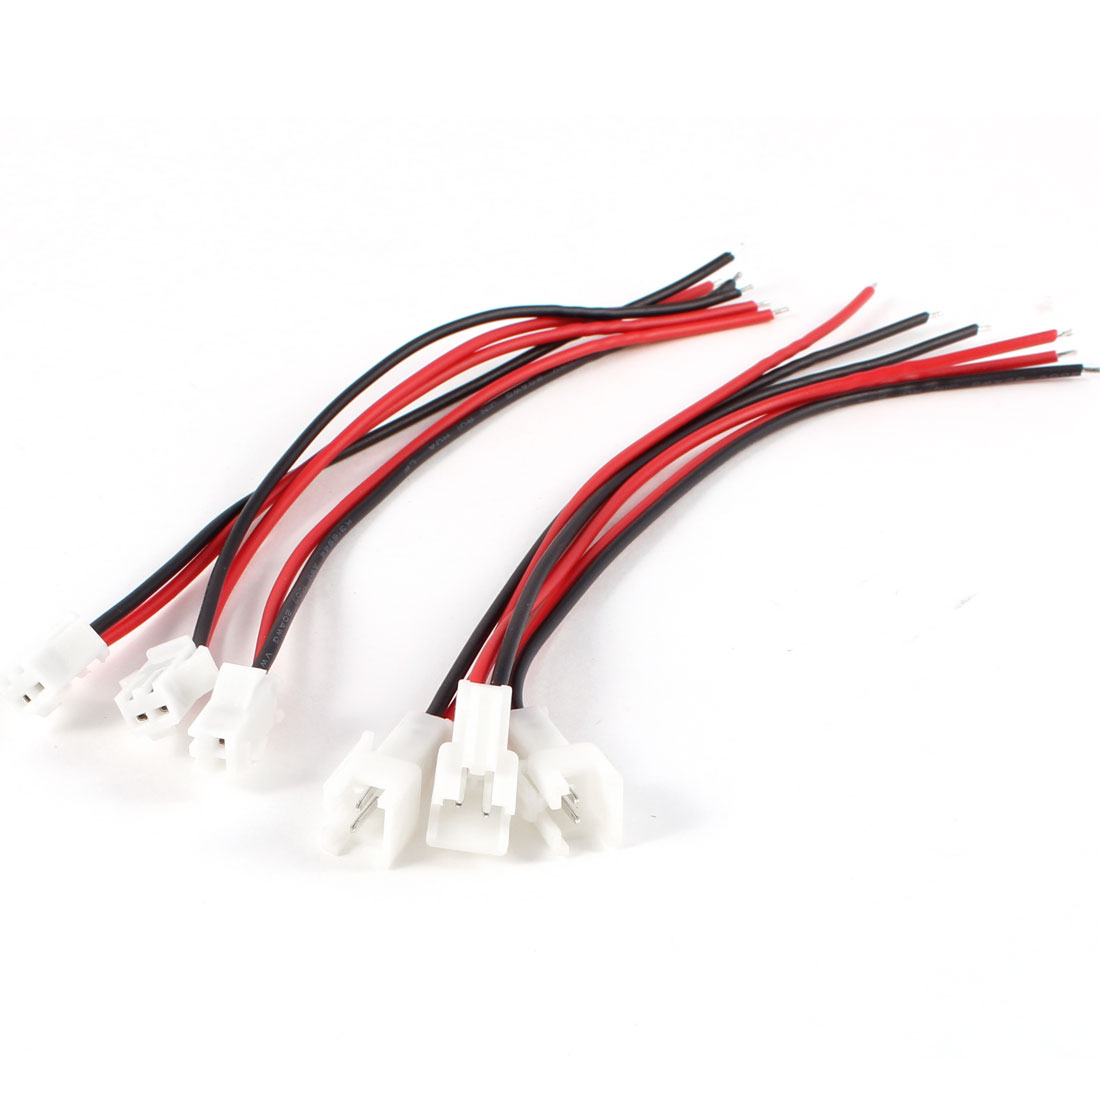 3 Pcs Neon Glow EL Wire Cable 2 Terminal Connector Female + Male Black Red internal